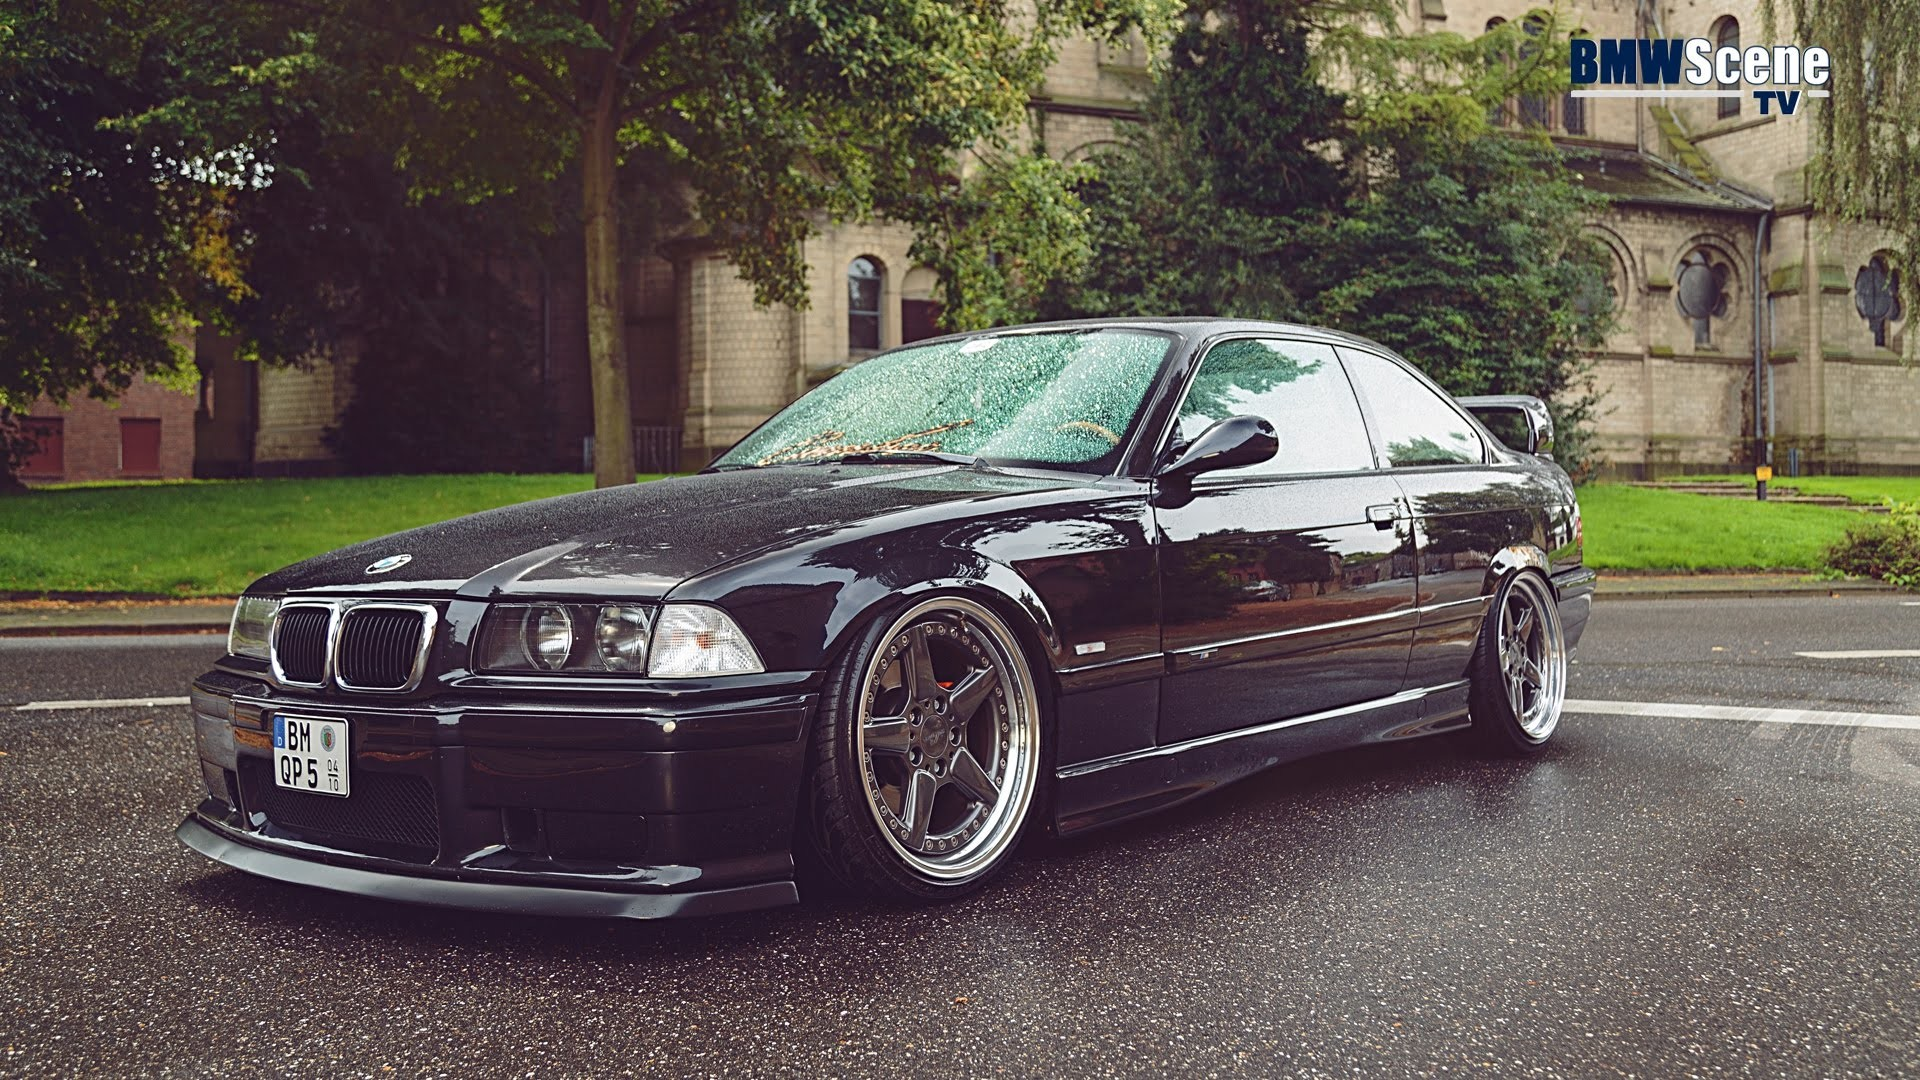 Fall Wallpaper For Iphone 6 Plus Bmw E36 M3 Wallpaper 64 Images